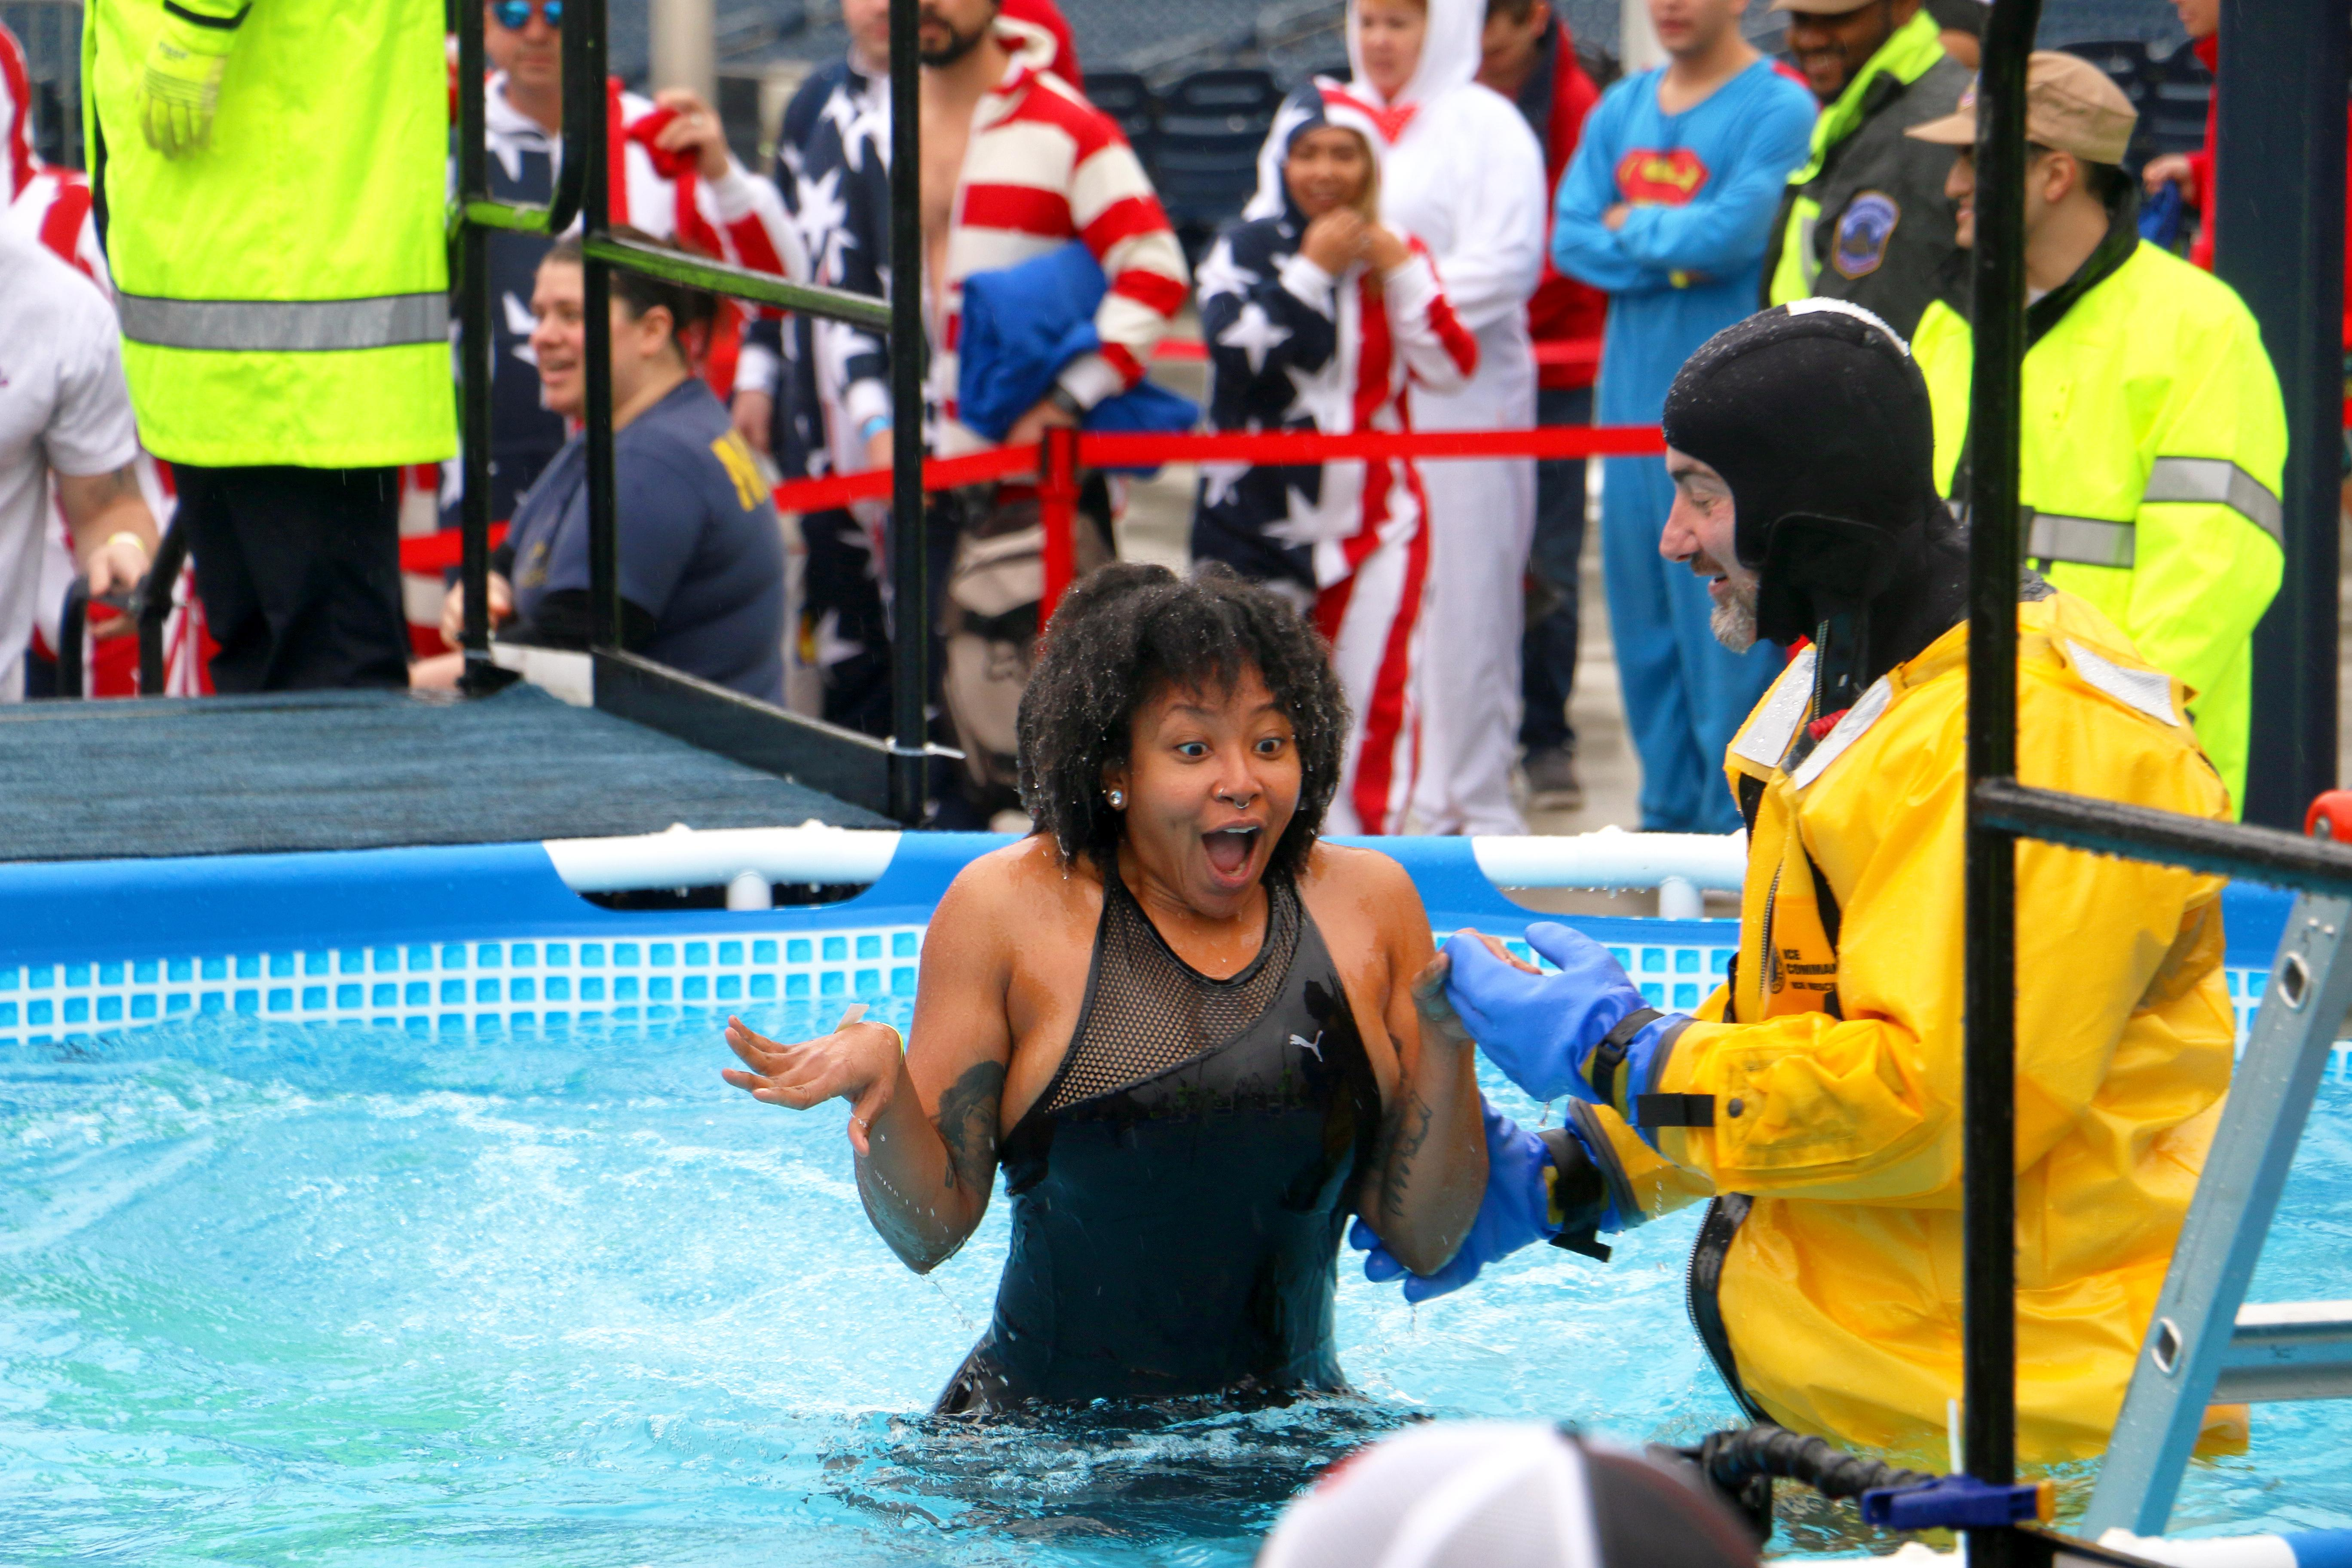 The Special Olympics D.C. Polar Plunge at National's Park had hundreds of plungers out in the rain to jump into above ground swimming pools to raise money for a great organization. Special Olympics D.C. directly supports the sports, health and inclusion programs that benefit over 1,600 children and adults with intellectual disabilities in the district. (Image: Jai Williams / DC Refined)